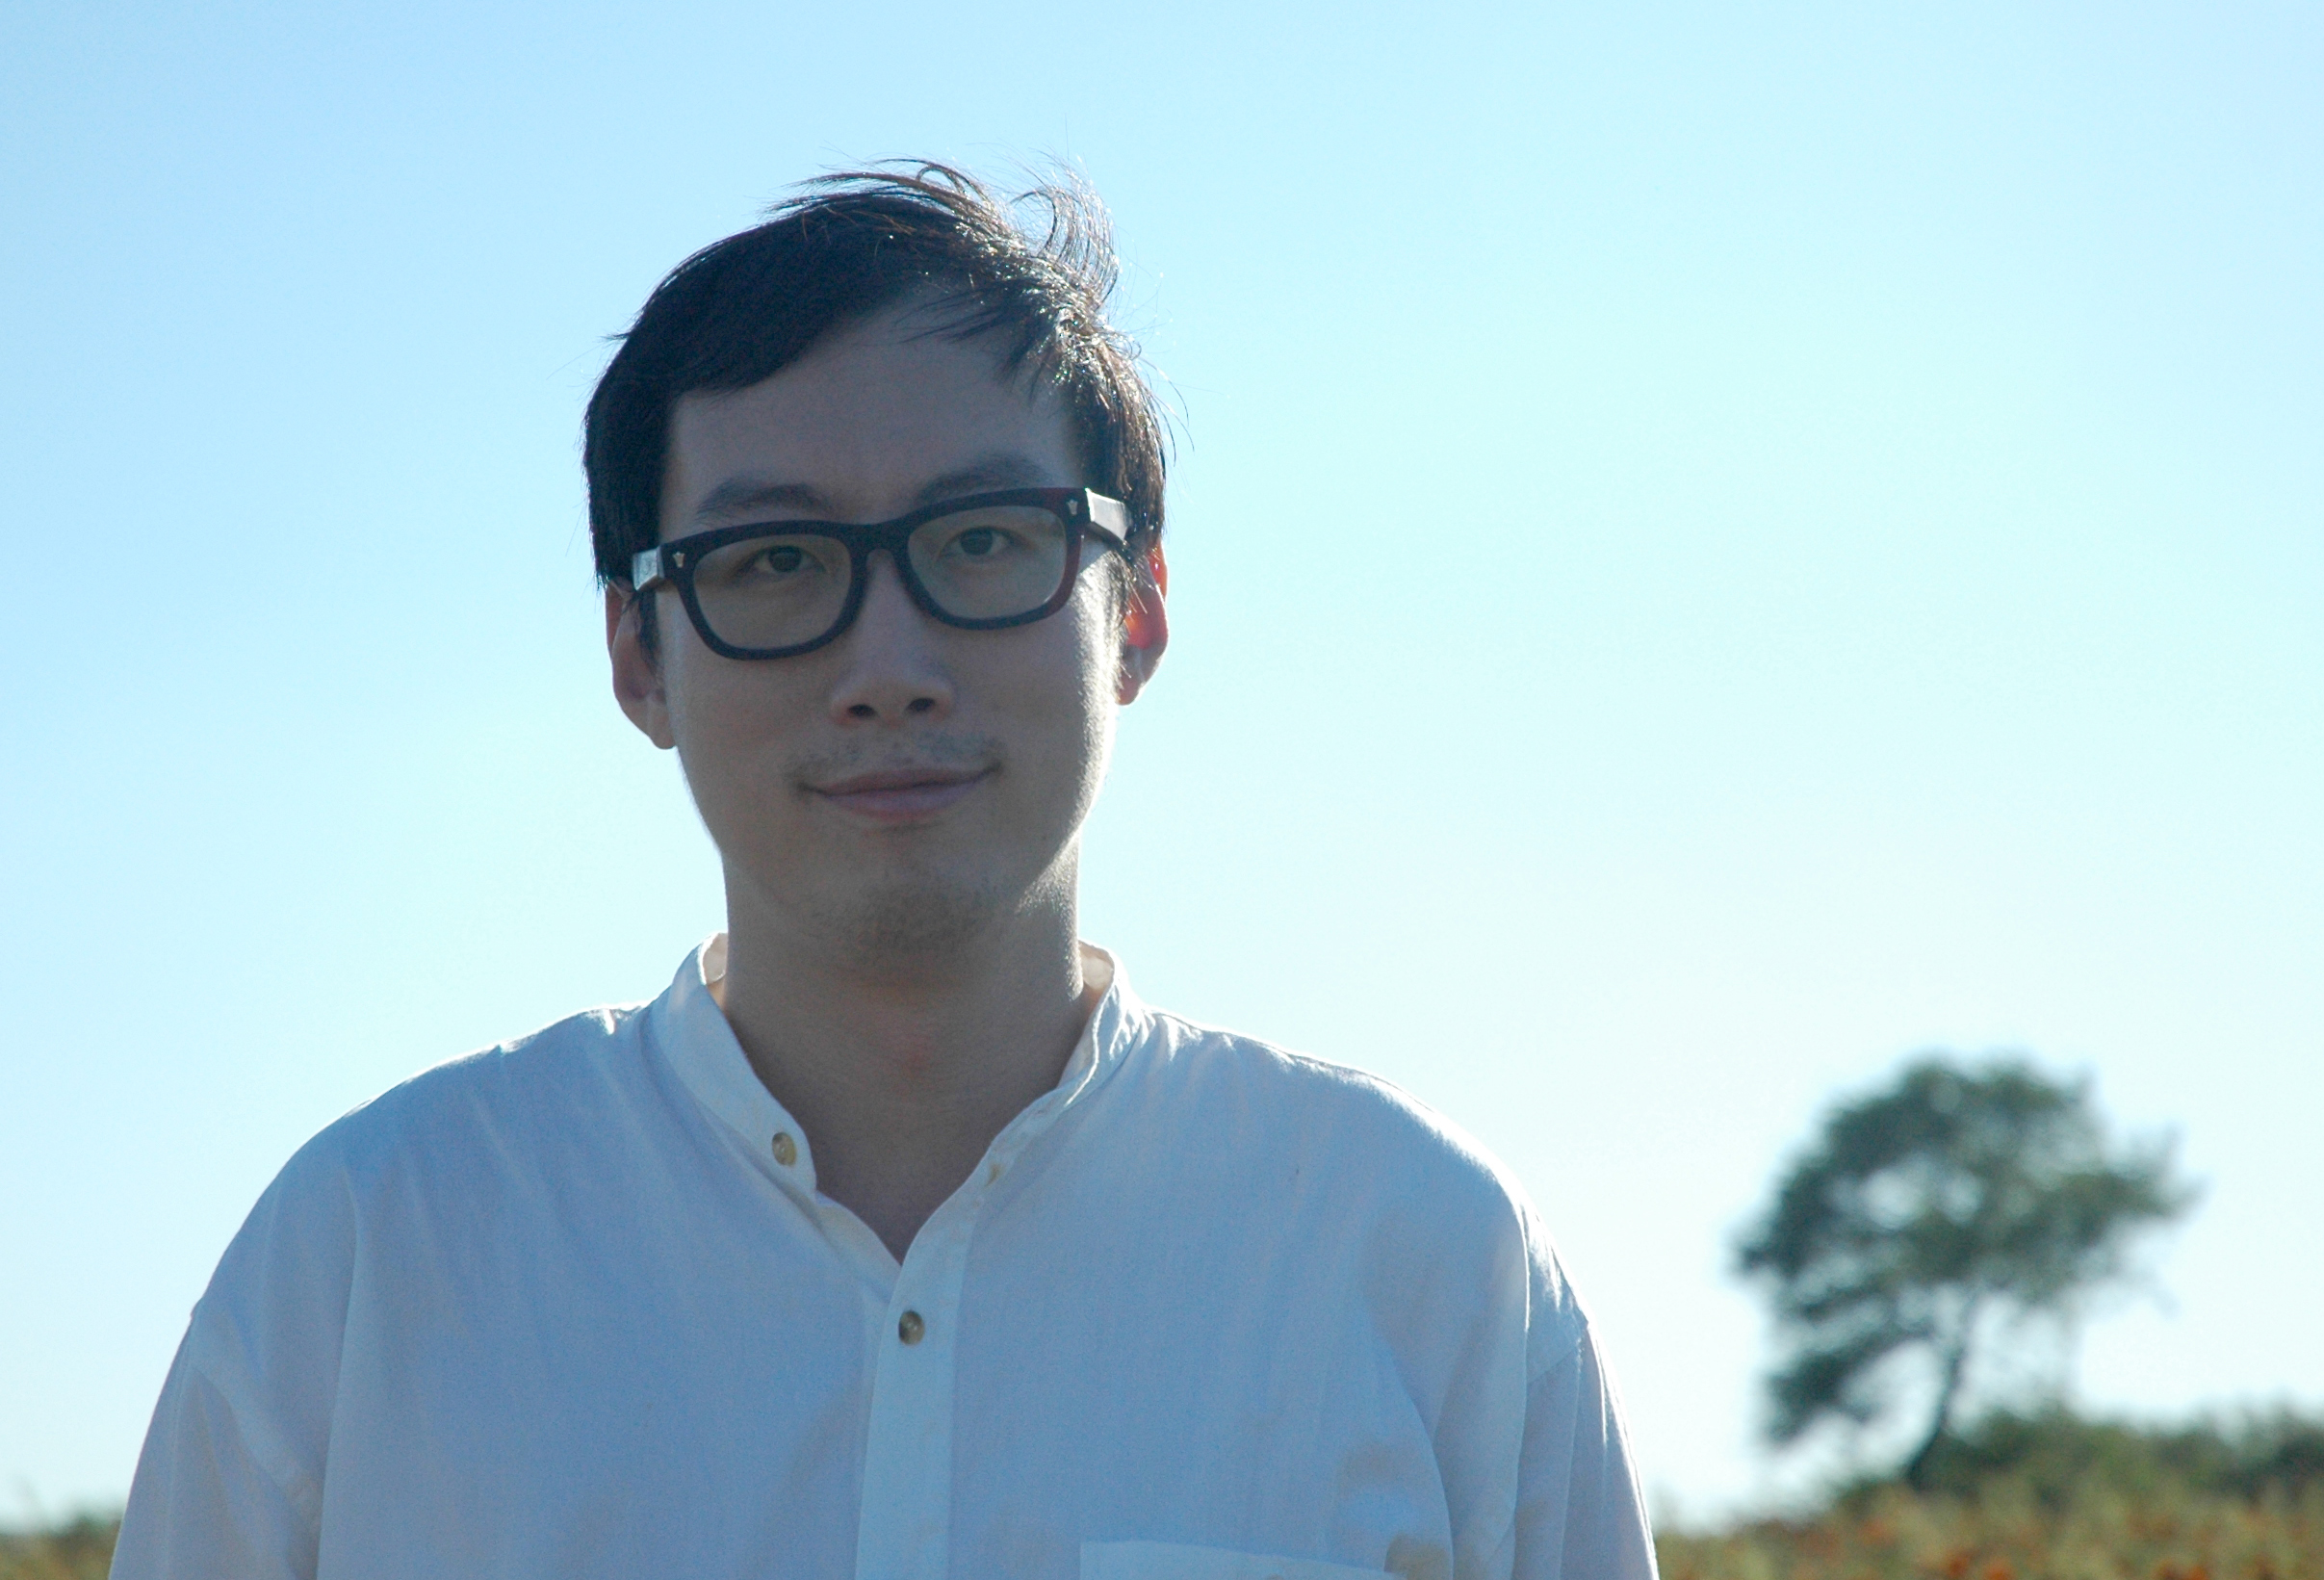 Rui Yao - Rui Yao is a Chinese writer, screenwriter and director. He is an Associate Professor at Guangzhou University and currently a Visiting Scholar at UCLA. He has written 8 scripts for film and TV, including Lin Shi Yan Yuan (2017) and Angry Kid(2013). Rui has been a fellow of Kyoto Filmmakers Lab at the 2009 Kyoto Historica International Film Festival, fellow of Berlinale Talent Campus at the 2009 Berlin International Film Festival, and fellow of Asian Film Academy at the 2008 Busan International Film Festival.